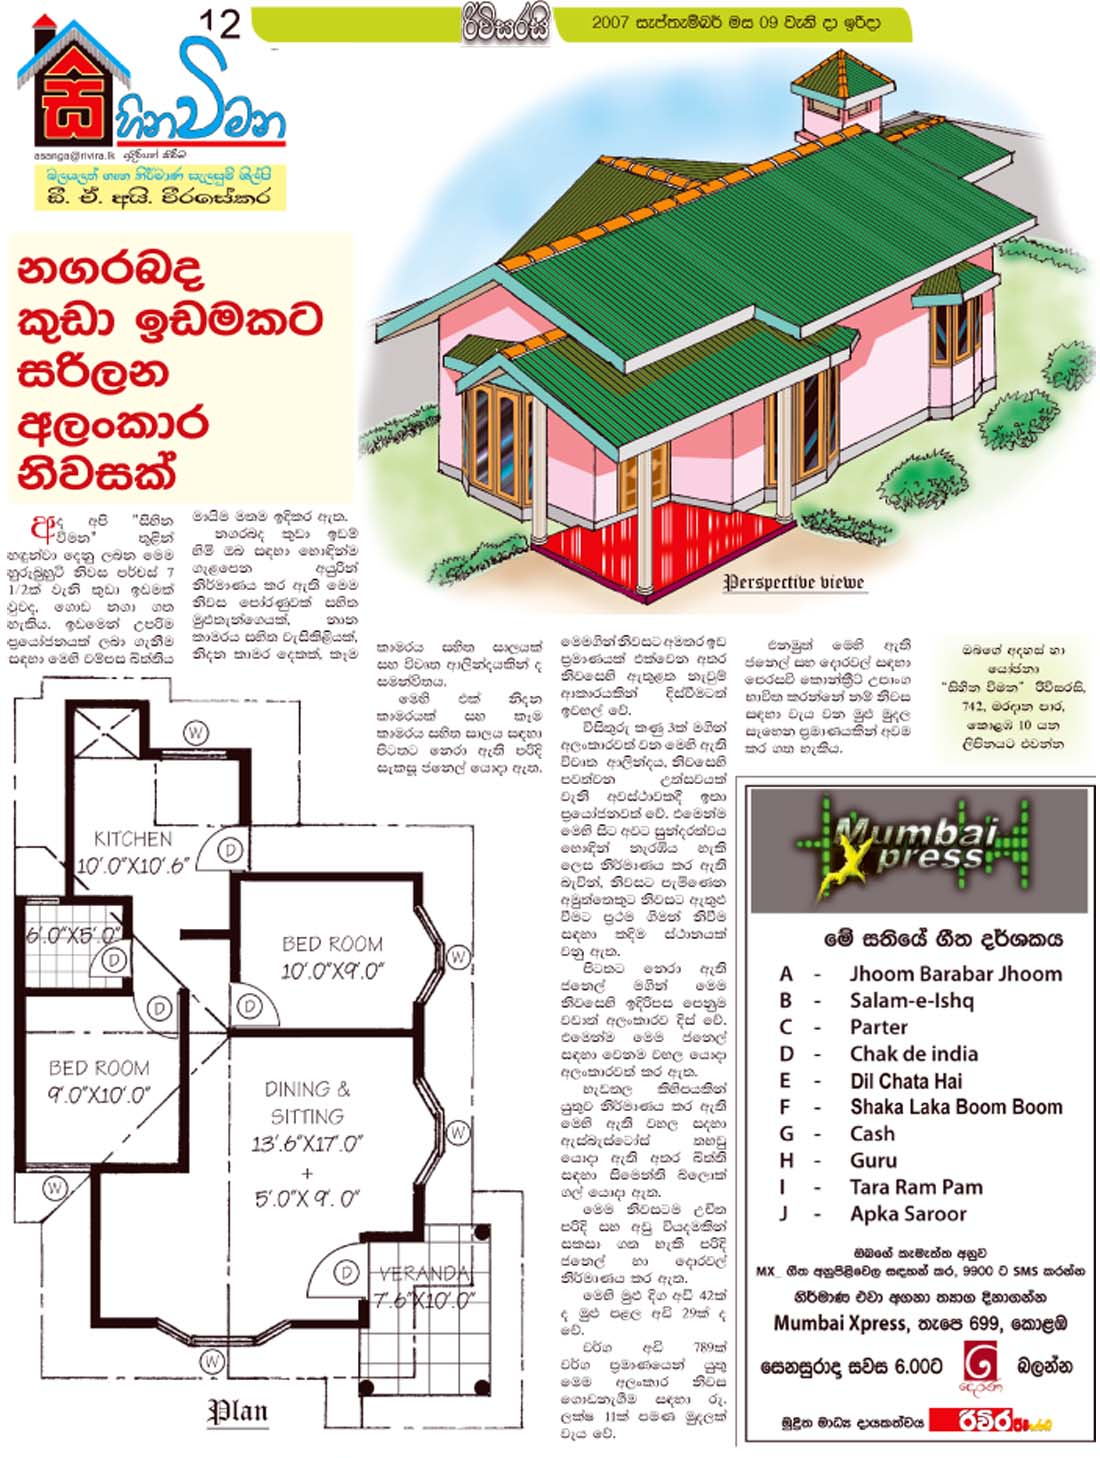 House plans of sri lanka tharunaya architect sri lanka for Apartment plans in sri lanka